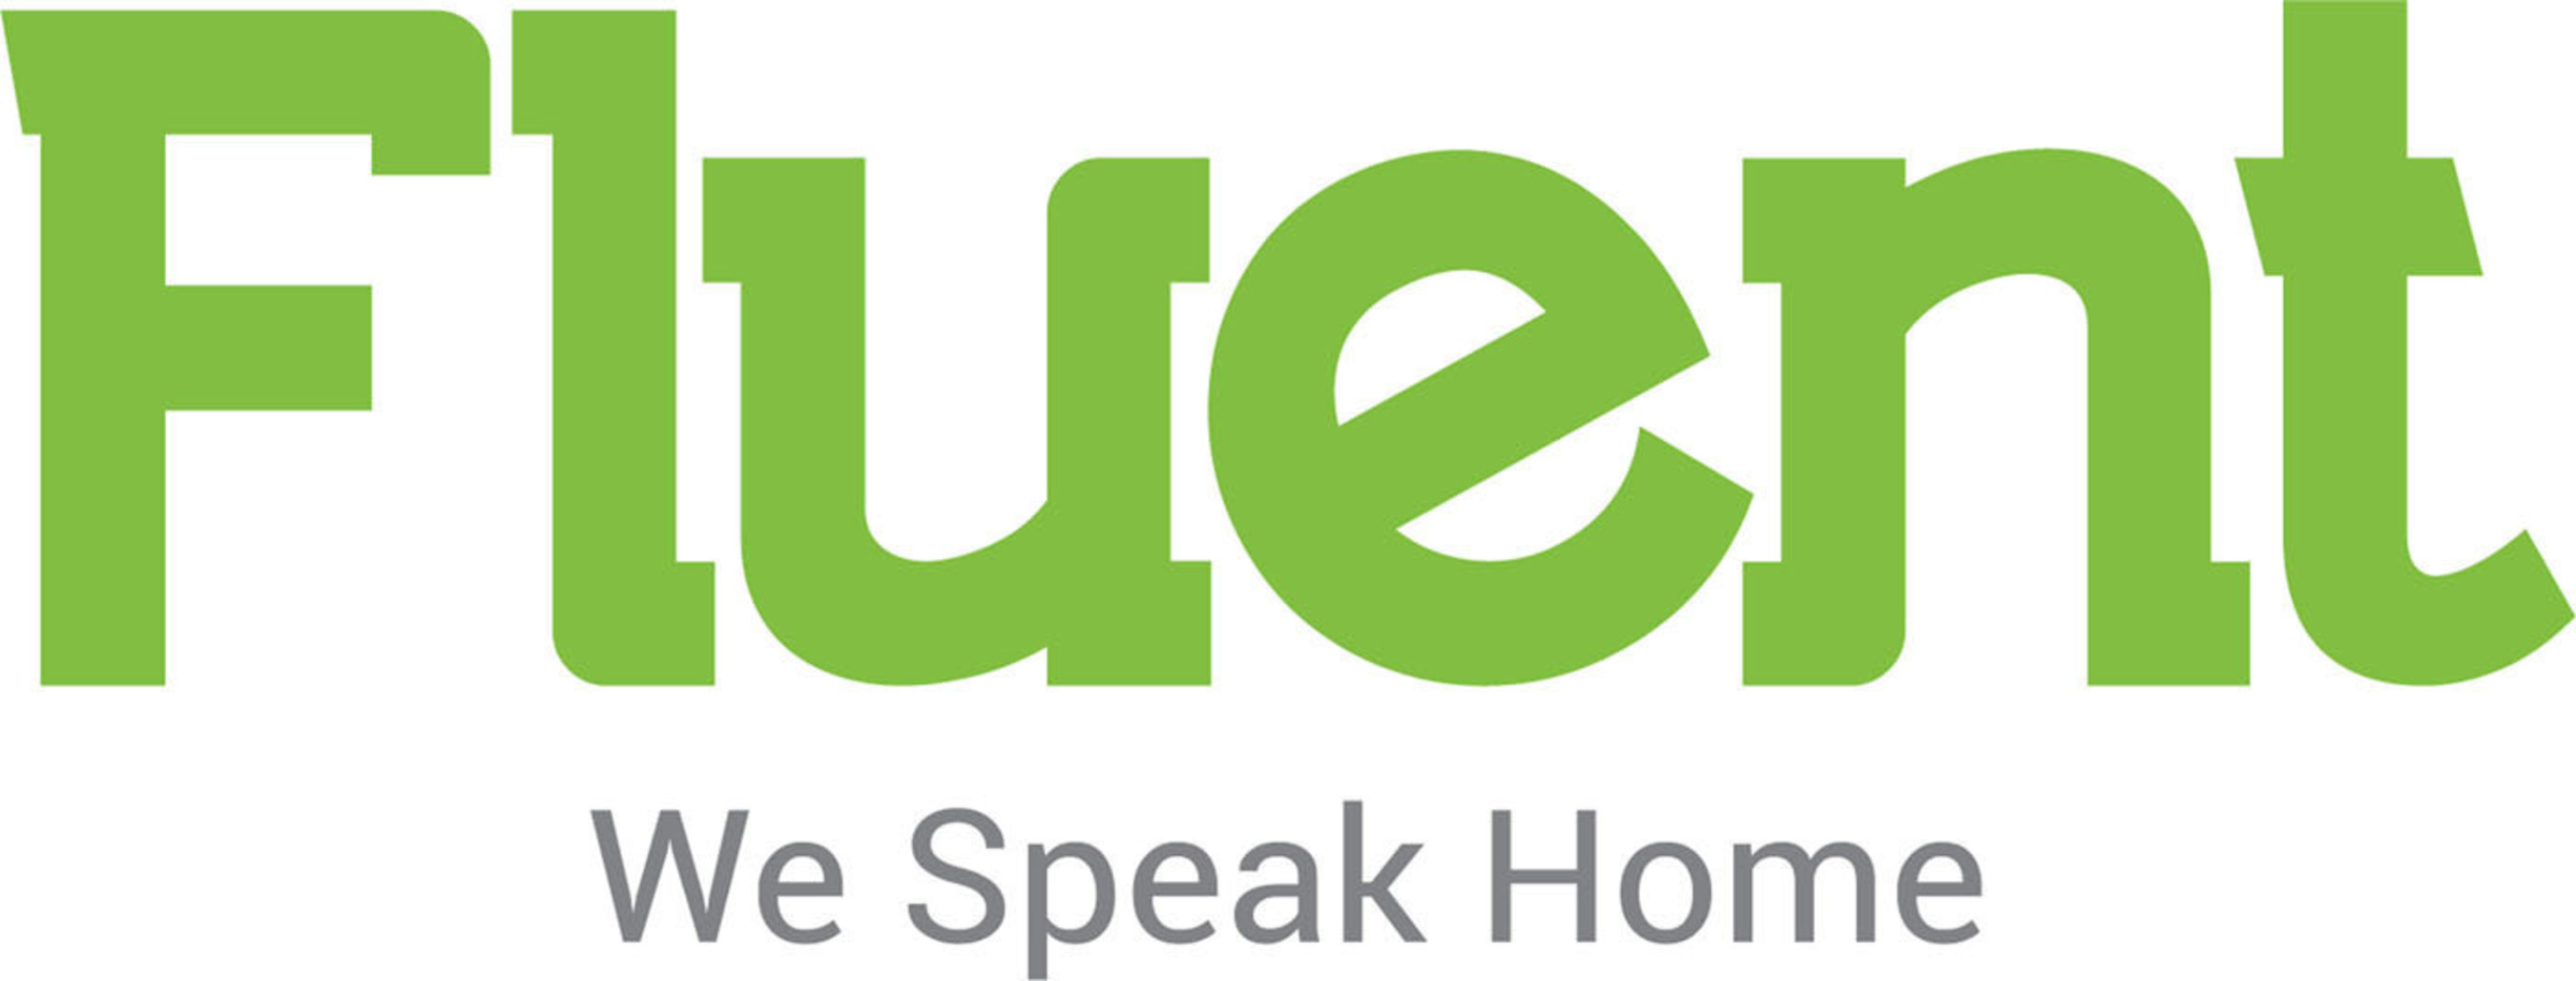 Fluent Home is a leading provider of home security and automation services. Today Fluent announced its expansion into more U.S. markets and broader recruiting efforts at it's new office location in Provo, Utah.